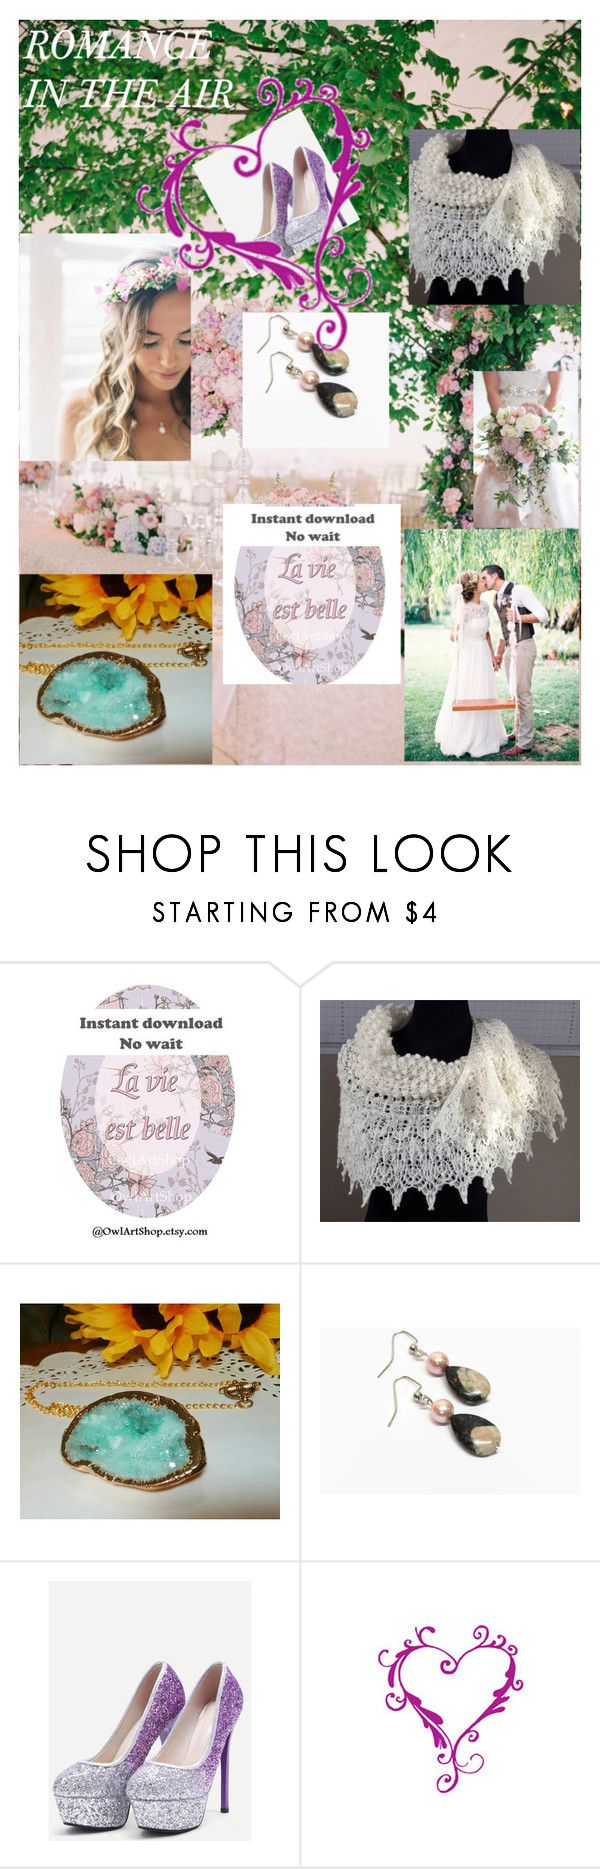 """""""ROMANCE IN THE AIR"""" by christine-bygrave ❤ liked on Polyvore featuring epiconetsy, EtsyTeamUnity and etsyevolution"""